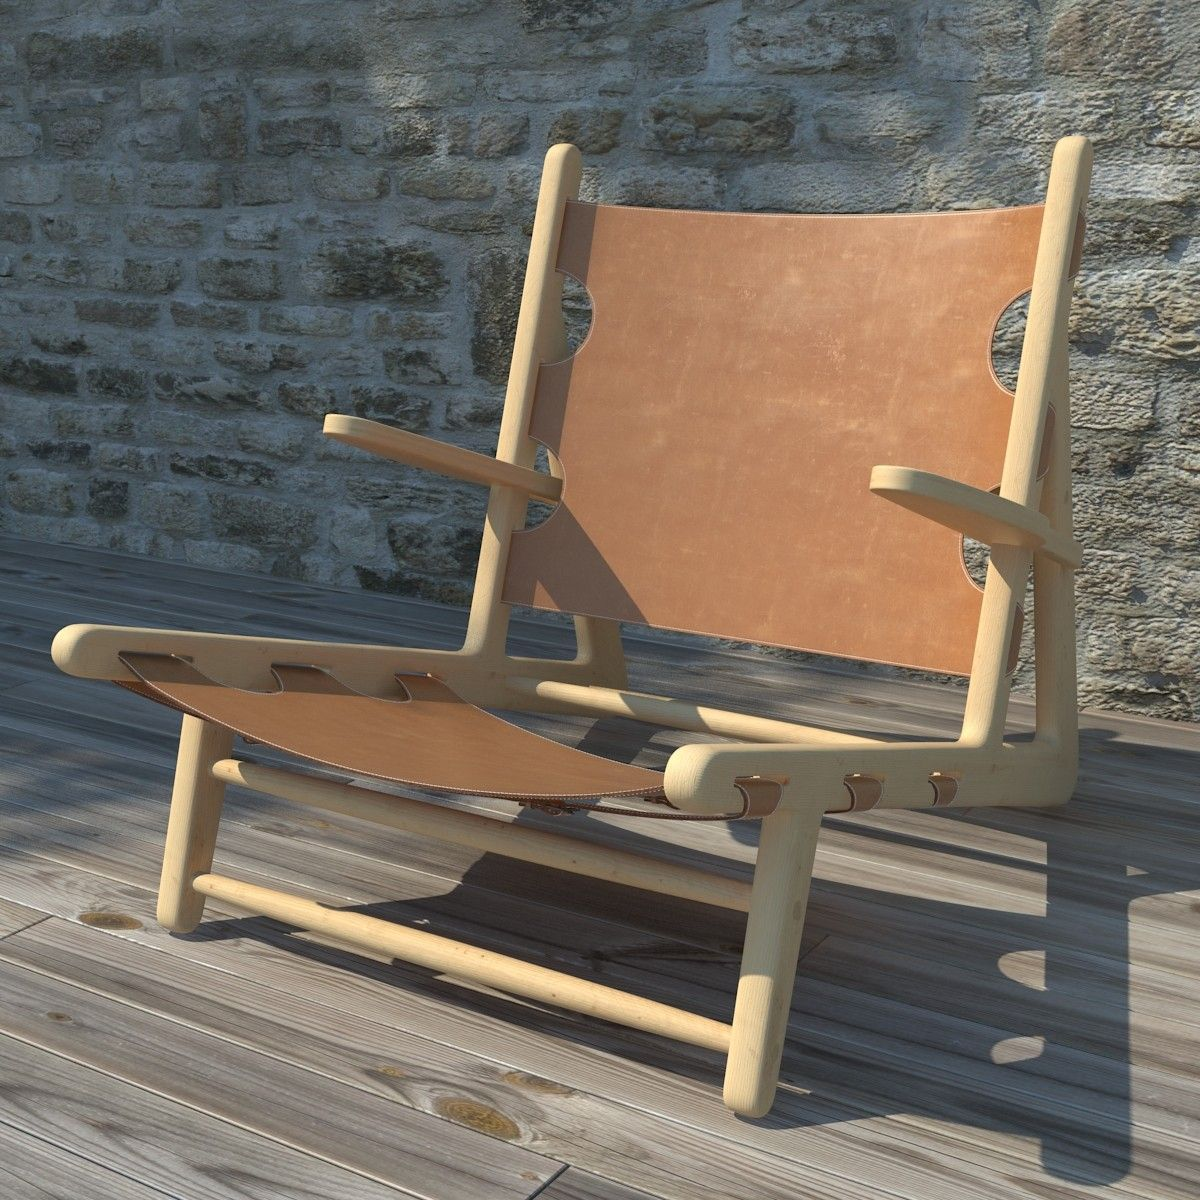 traditional scandinavian furniture. Classic Scandinavian Furniture For Outdoor Living Space Design Fascinating Chair Traditional Deck With Wooden Floor Brick Wall B